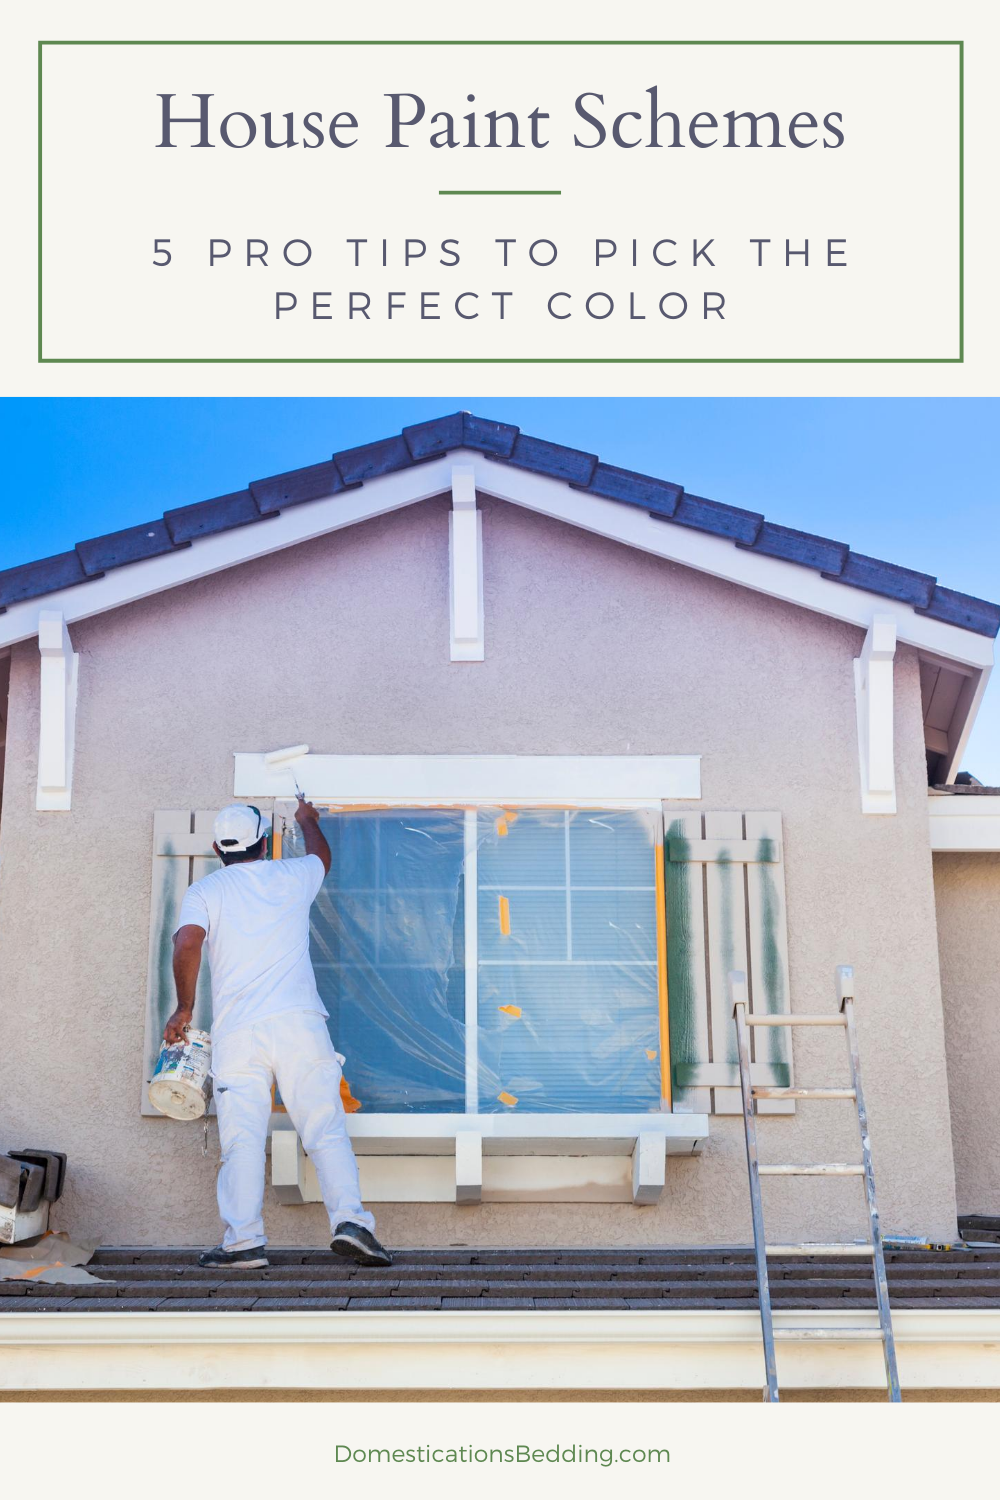 5 Pro Tips to Choosing the Perfect House Paint Schemes